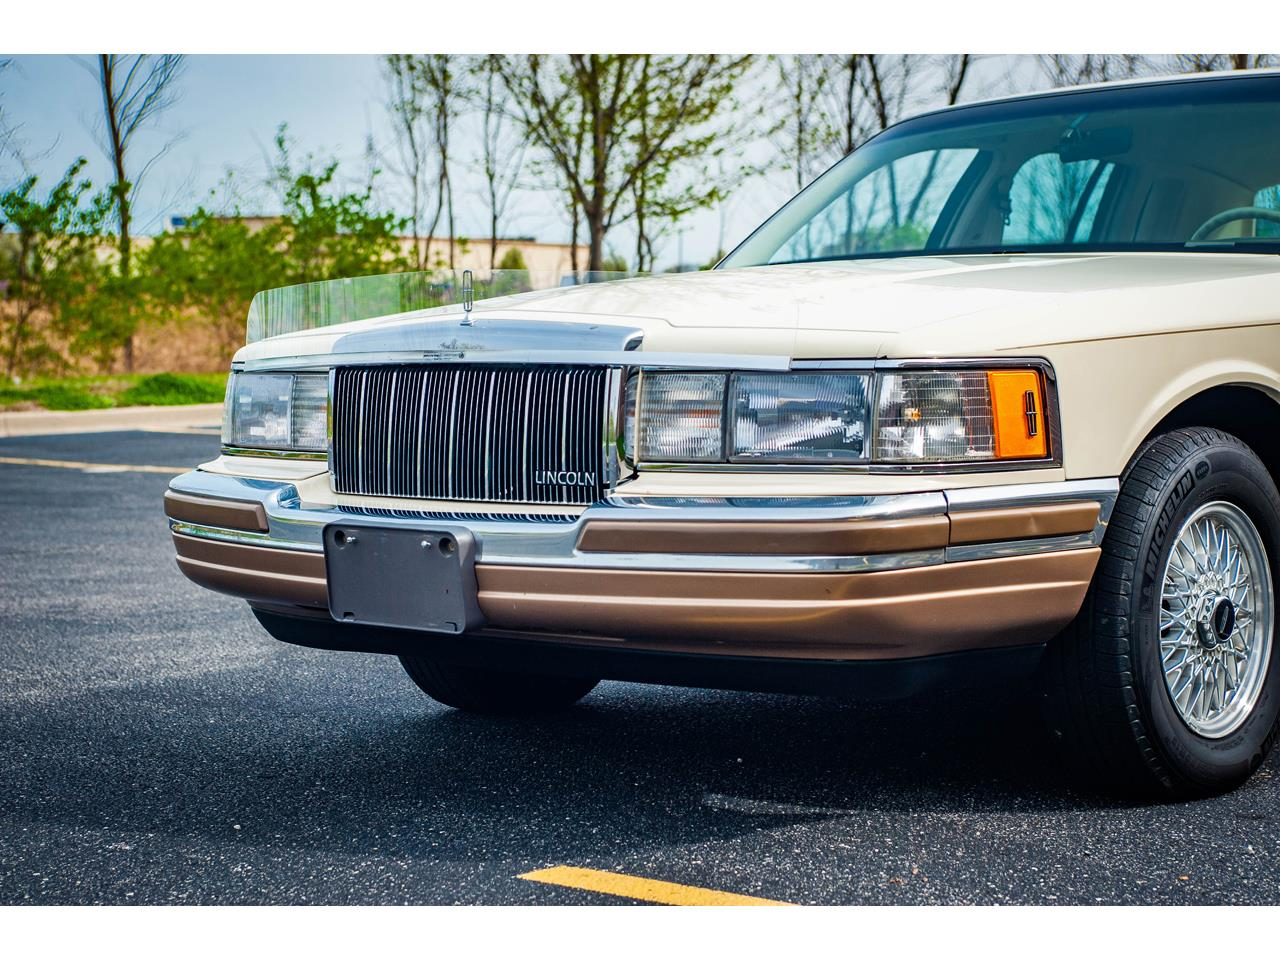 Large Picture of '90 Lincoln Town Car - $16,500.00 Offered by Gateway Classic Cars - St. Louis - QB8G